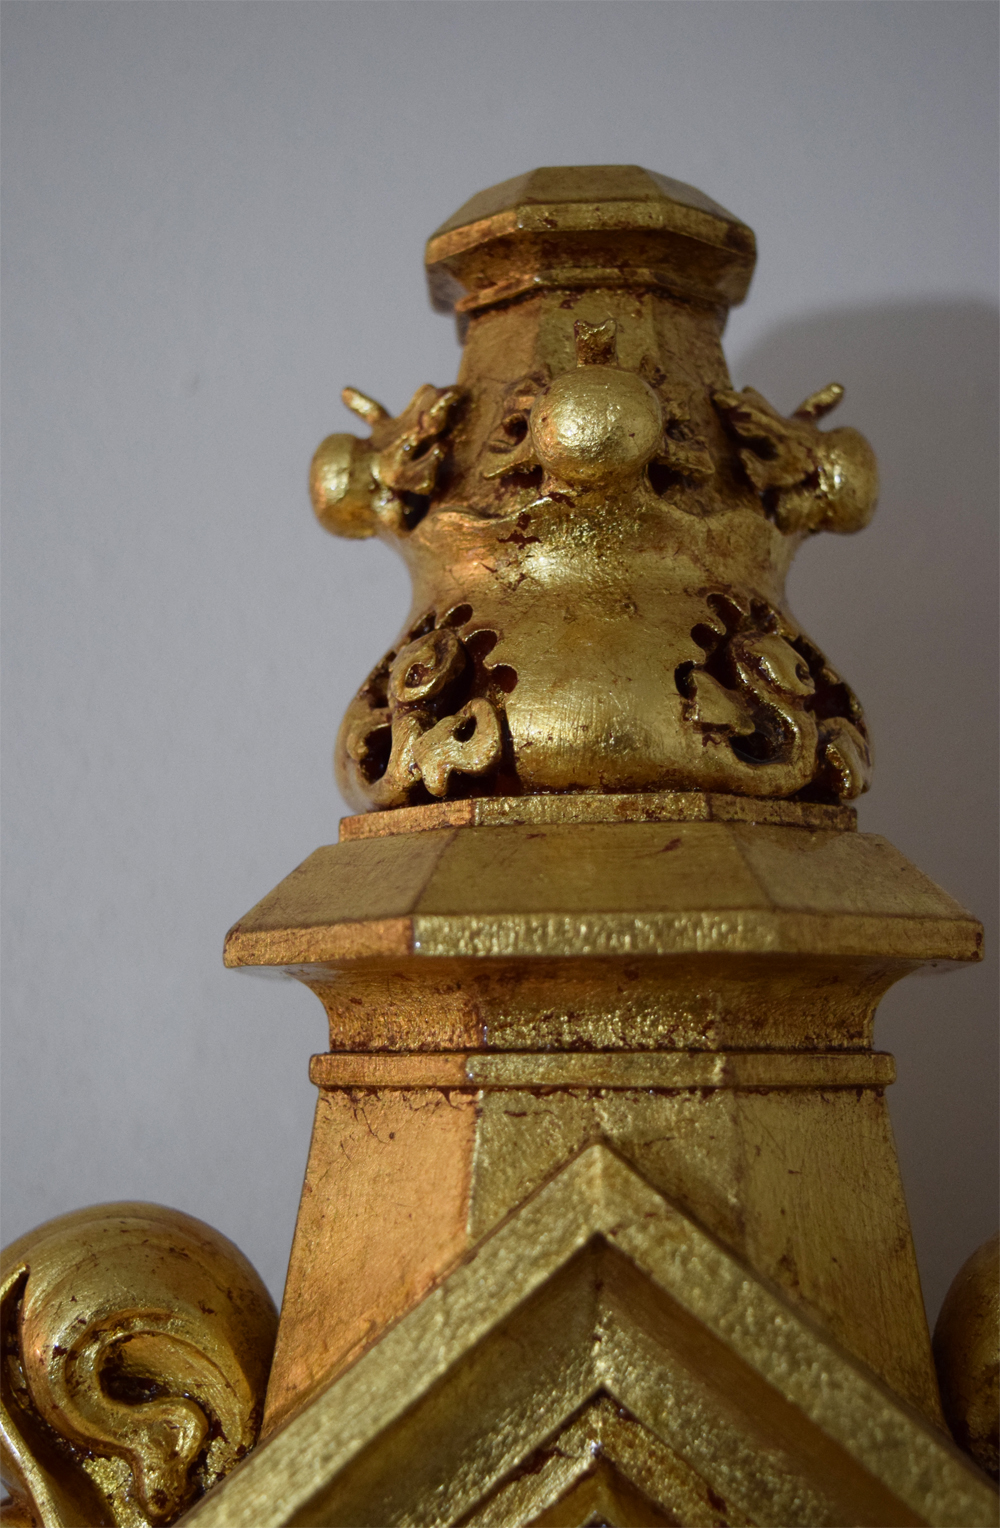 Detail of the top finial.